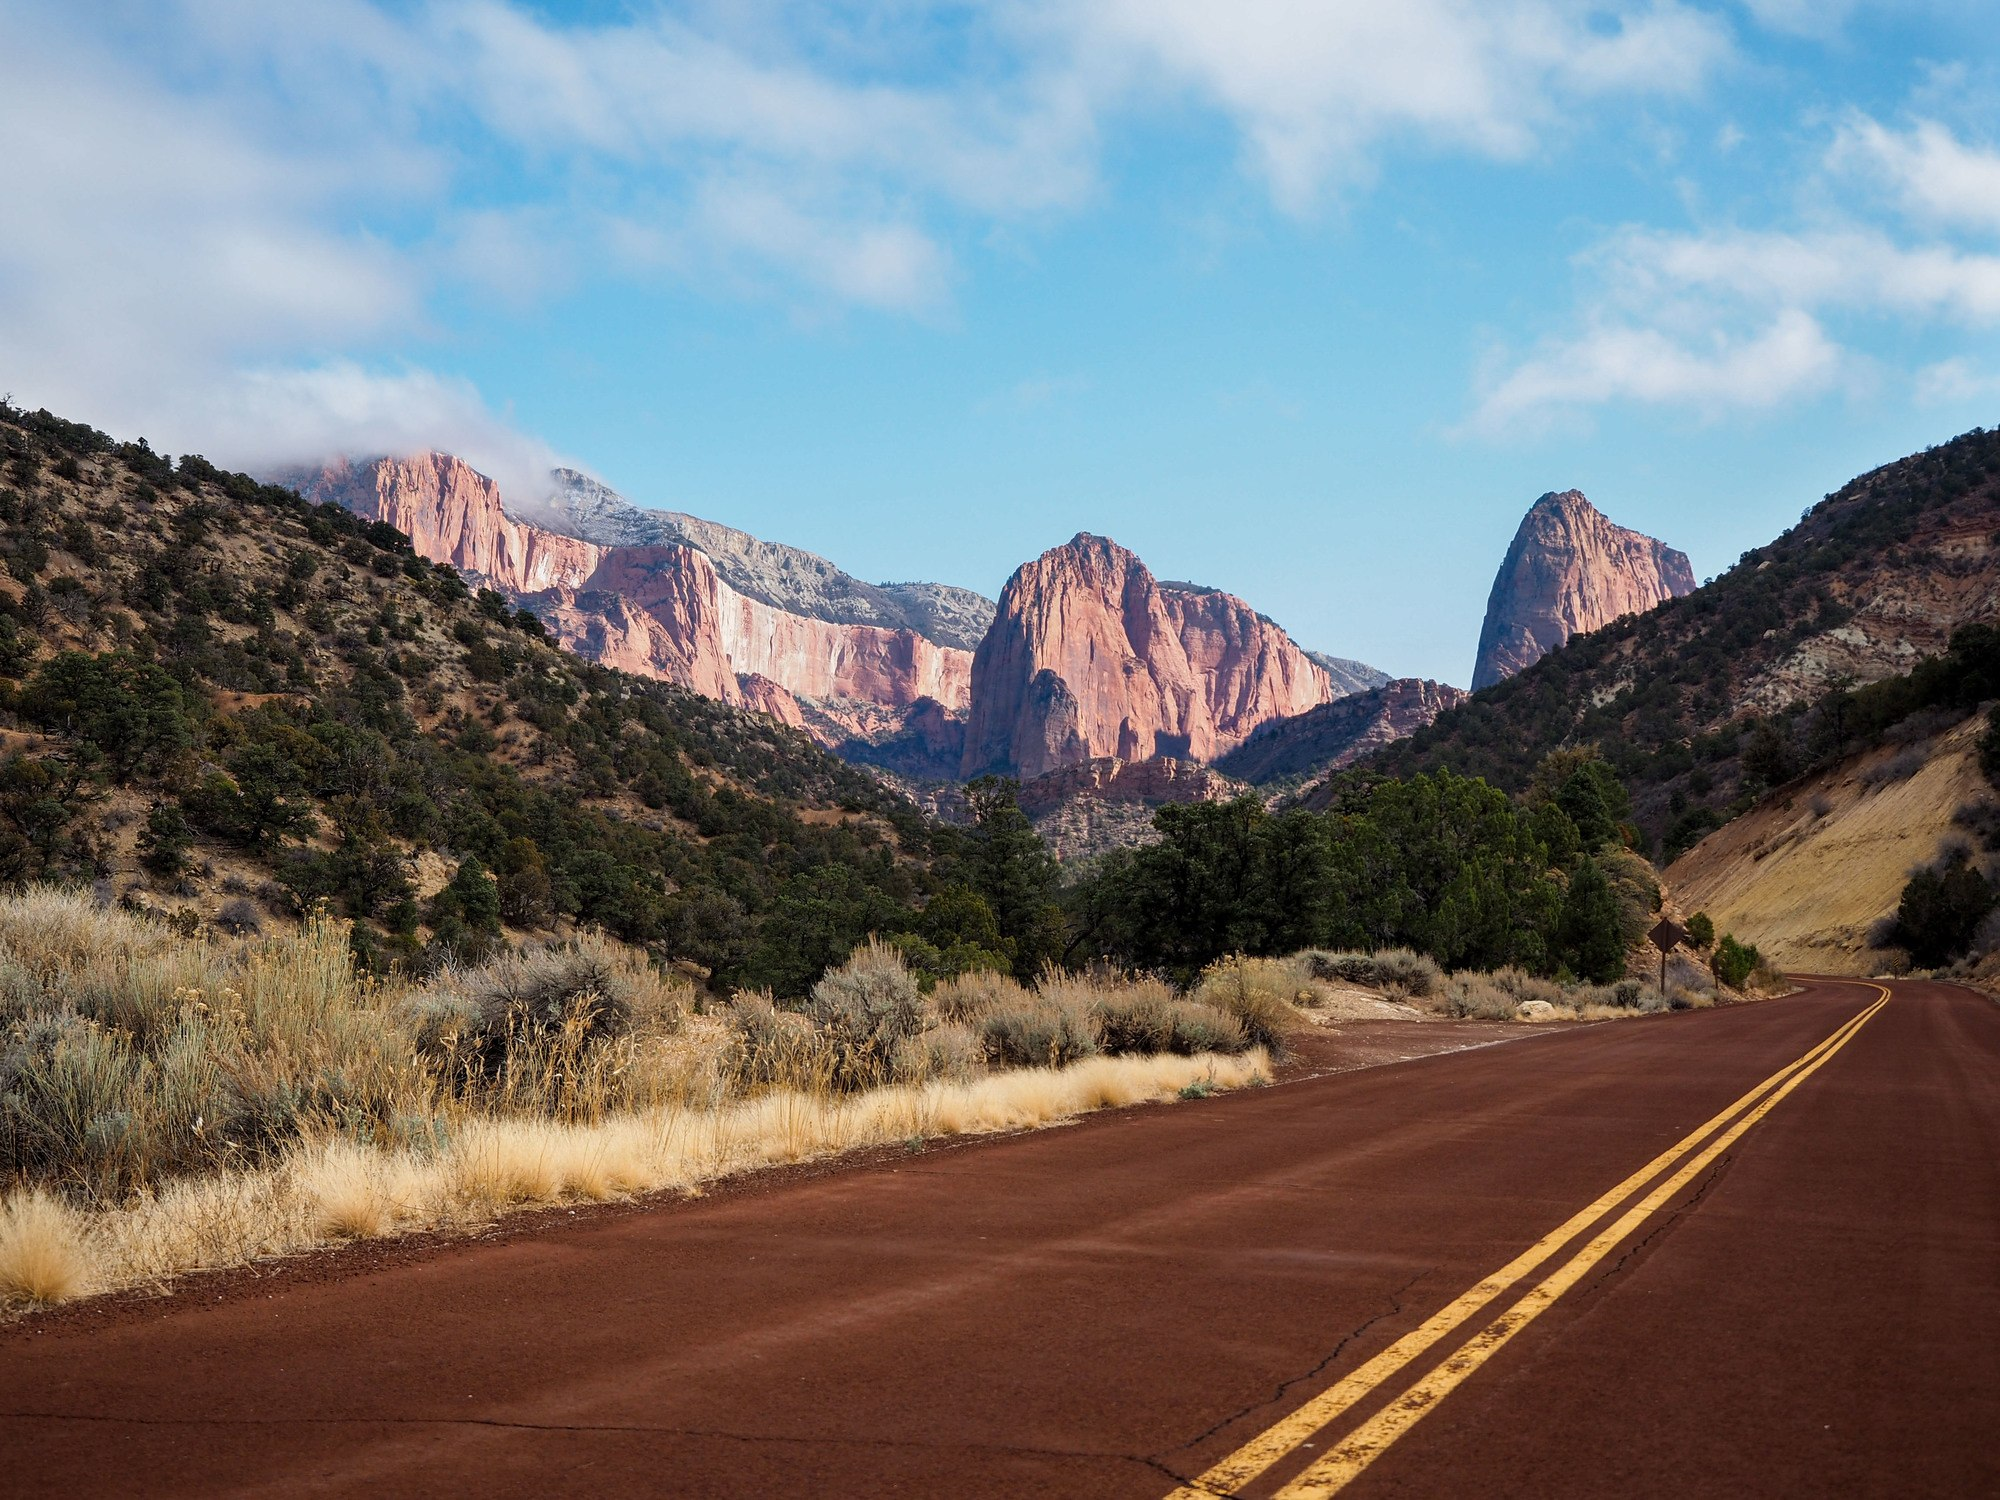 Kolob Canyons in Zion National Park